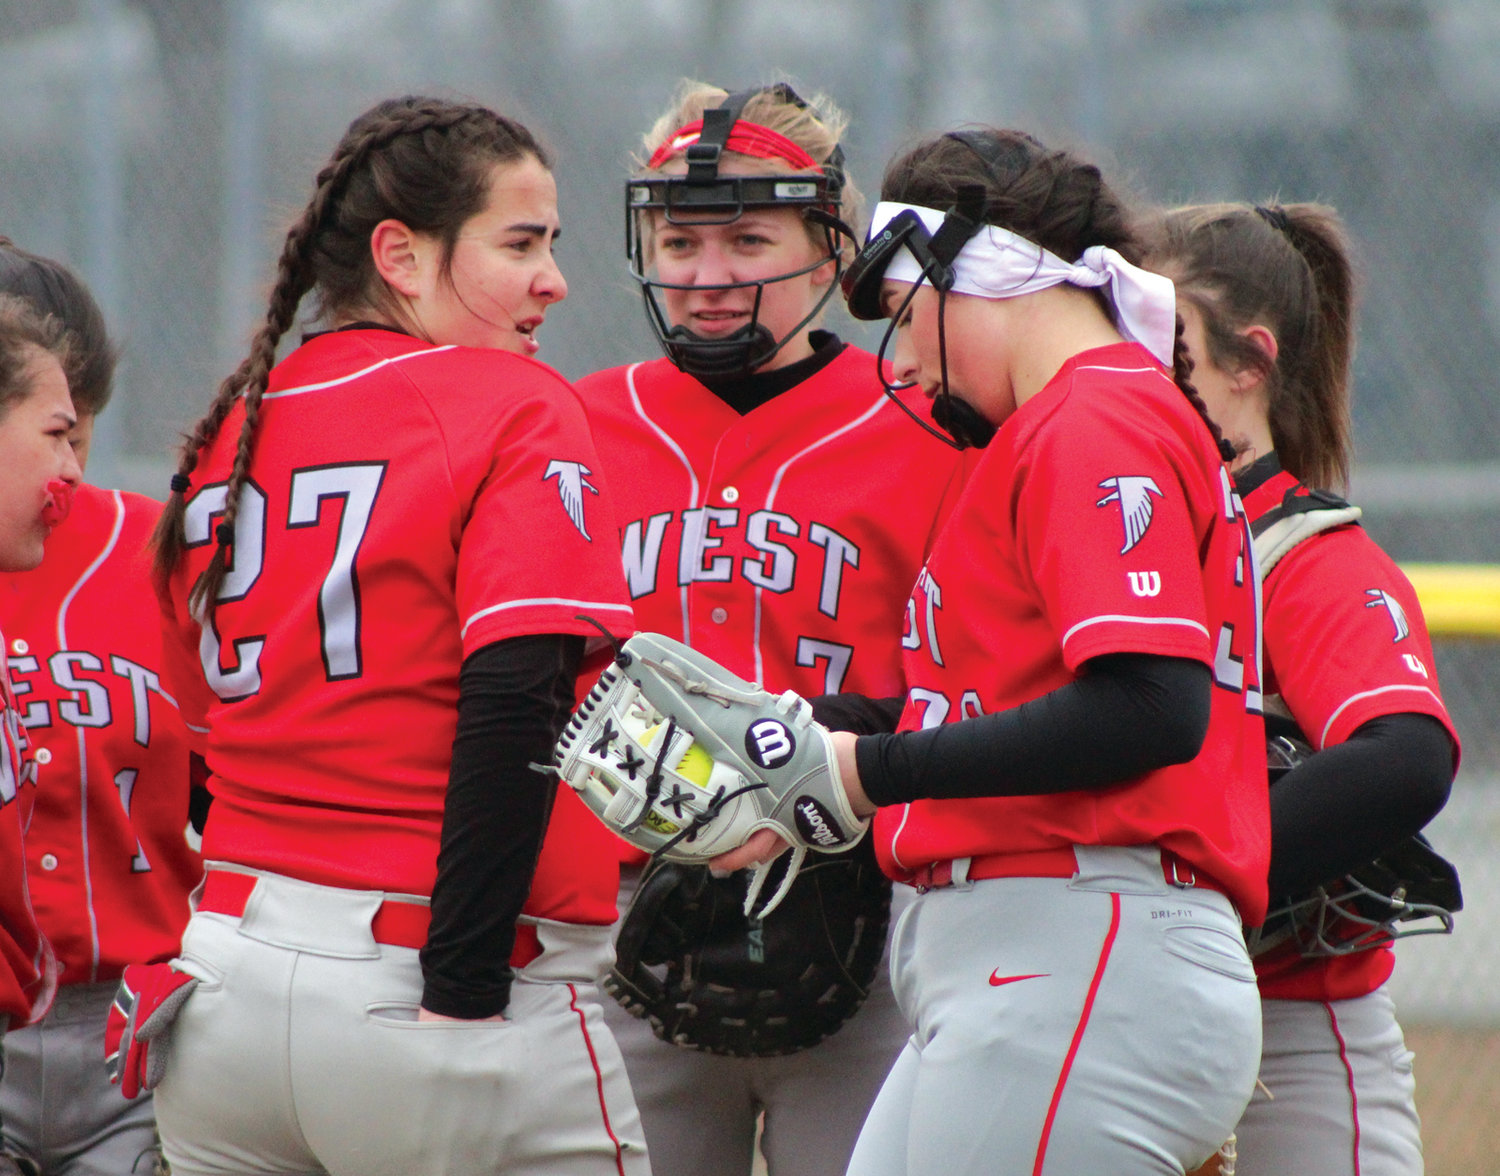 TALKING IT OUT: Members of the Cranston West infield meet during a timeout against Pilgrim.